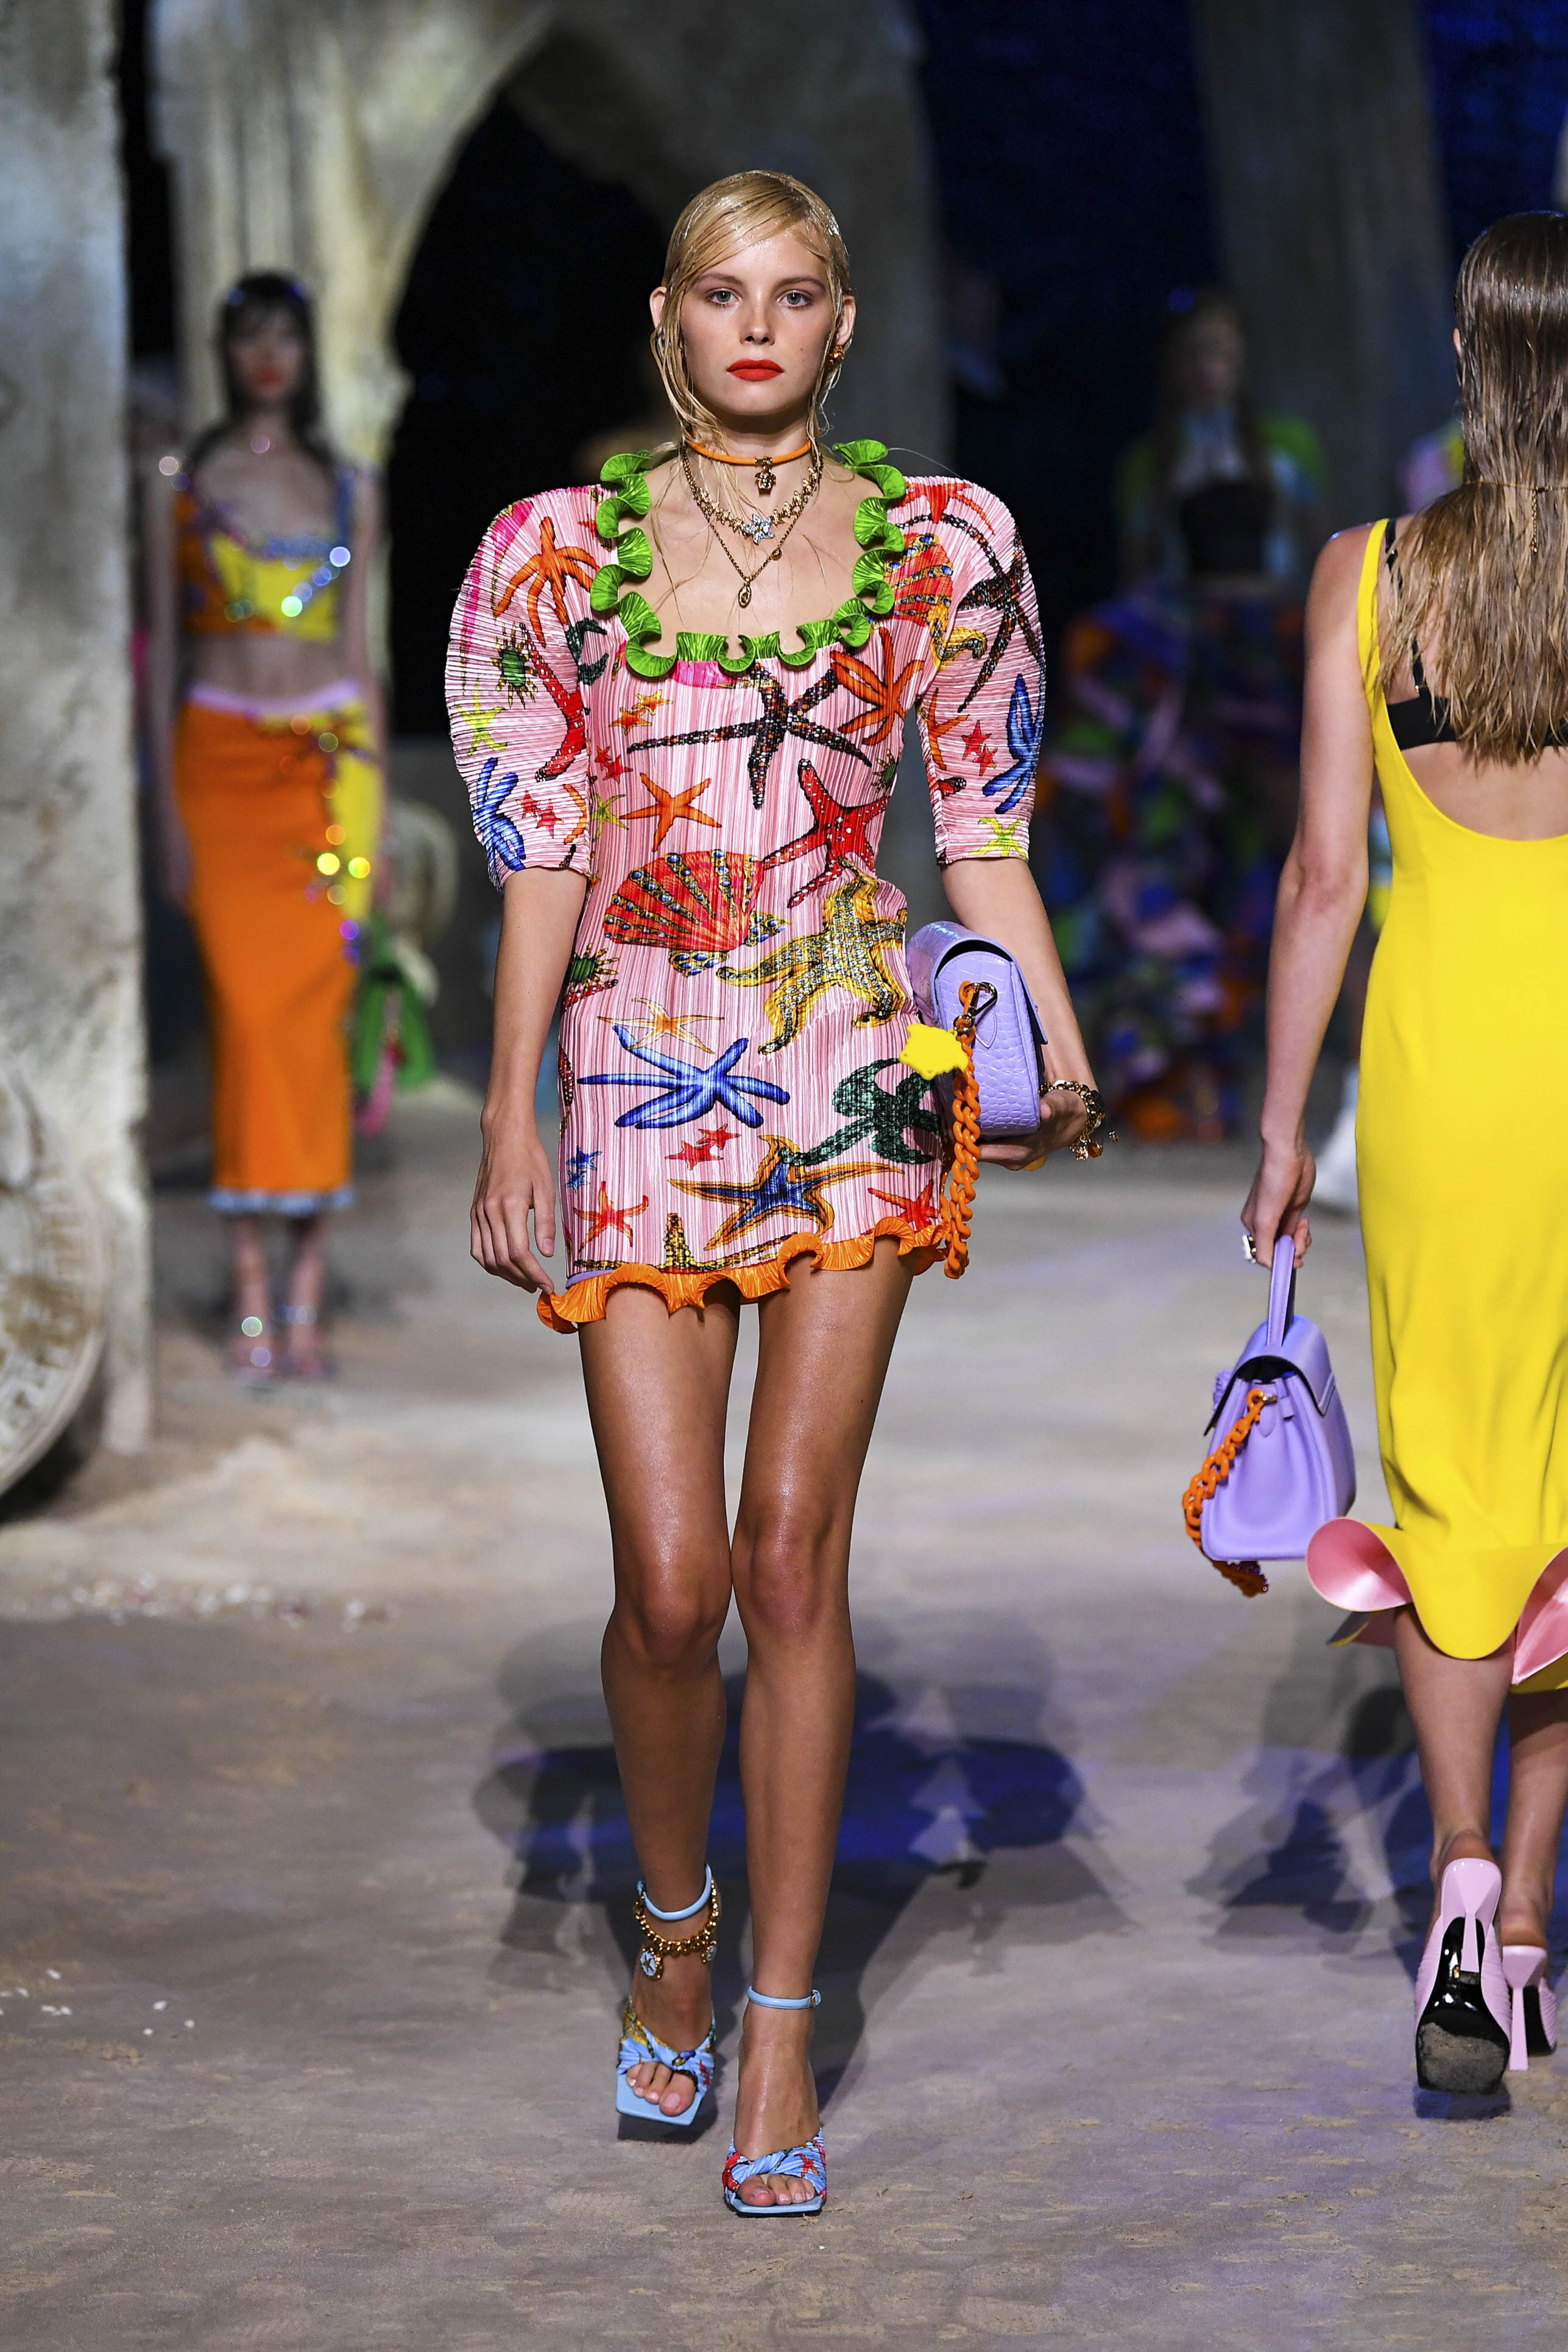 Prints galore: Dolce & Gabbana and Versace's Spring/Summer '21 collection (фото 18)